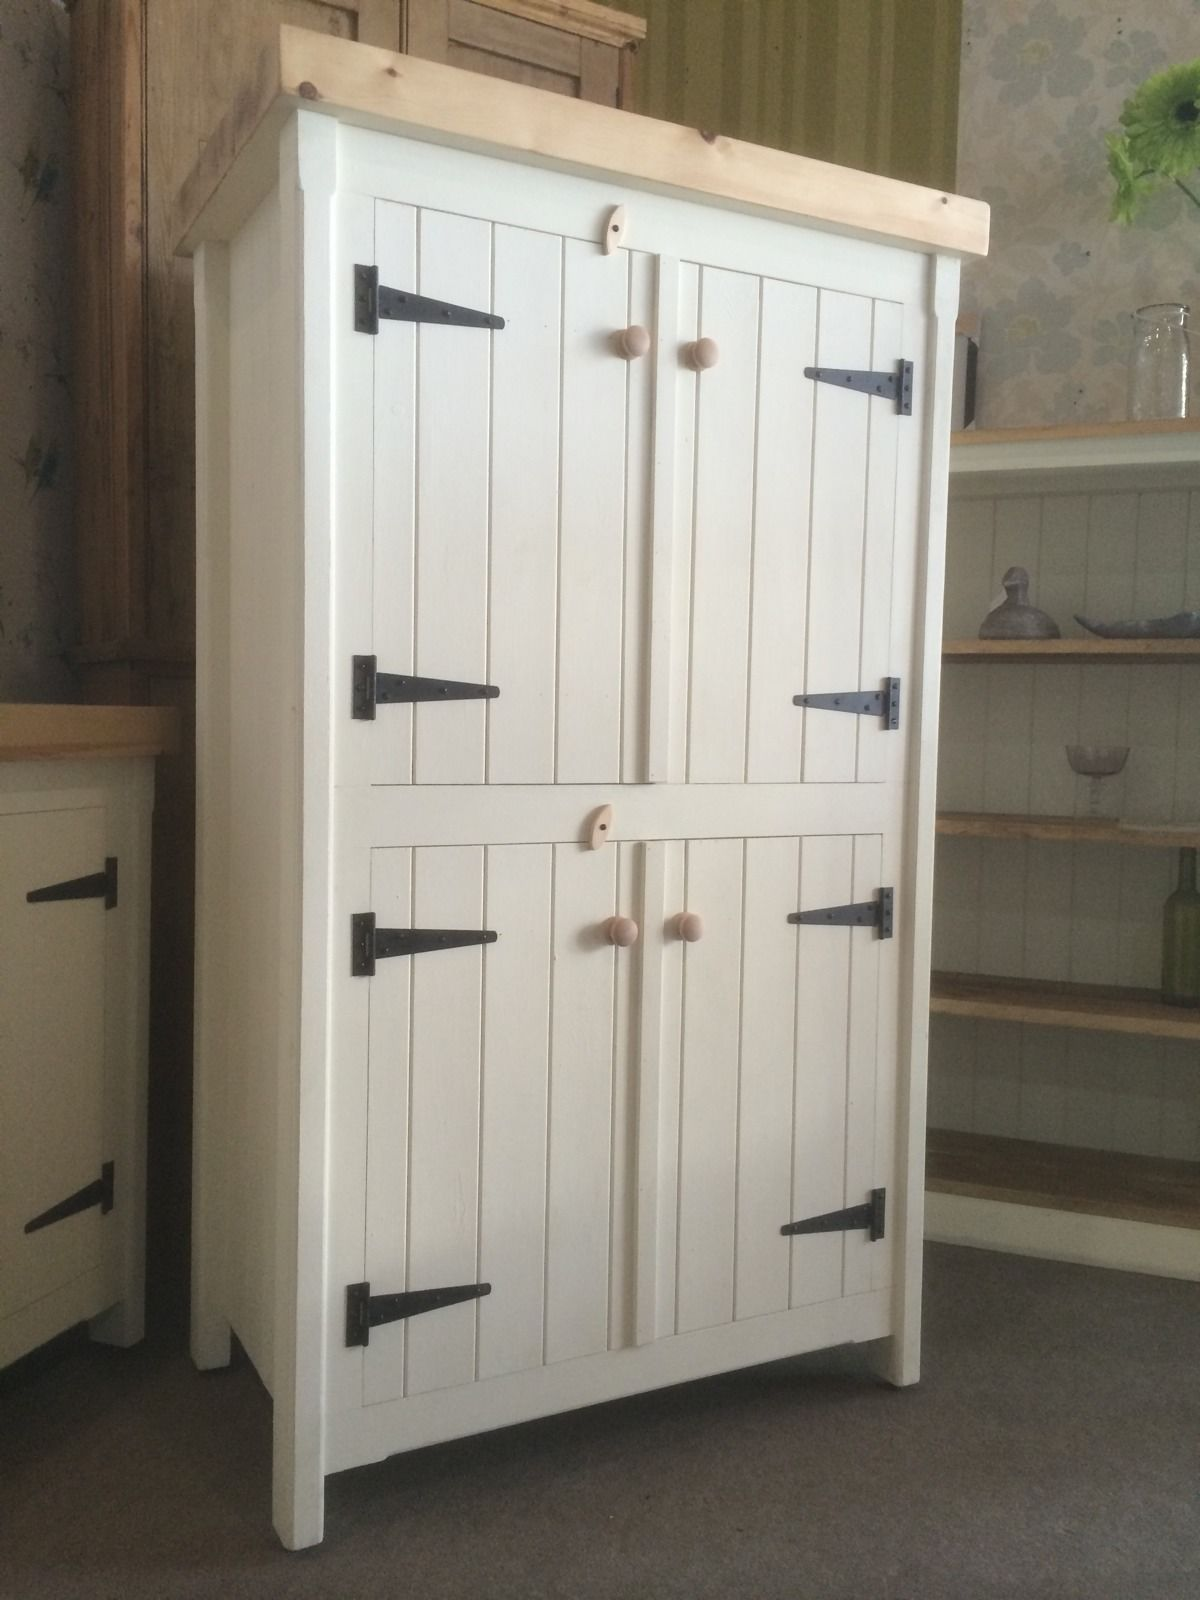 Rustic Wooden Pine Freestanding Kitchen Handmade Cupboard Unit Pantry Larder Kitchen Pantry Cabinet Freestanding Pantry Storage Cabinet Cupboard Design